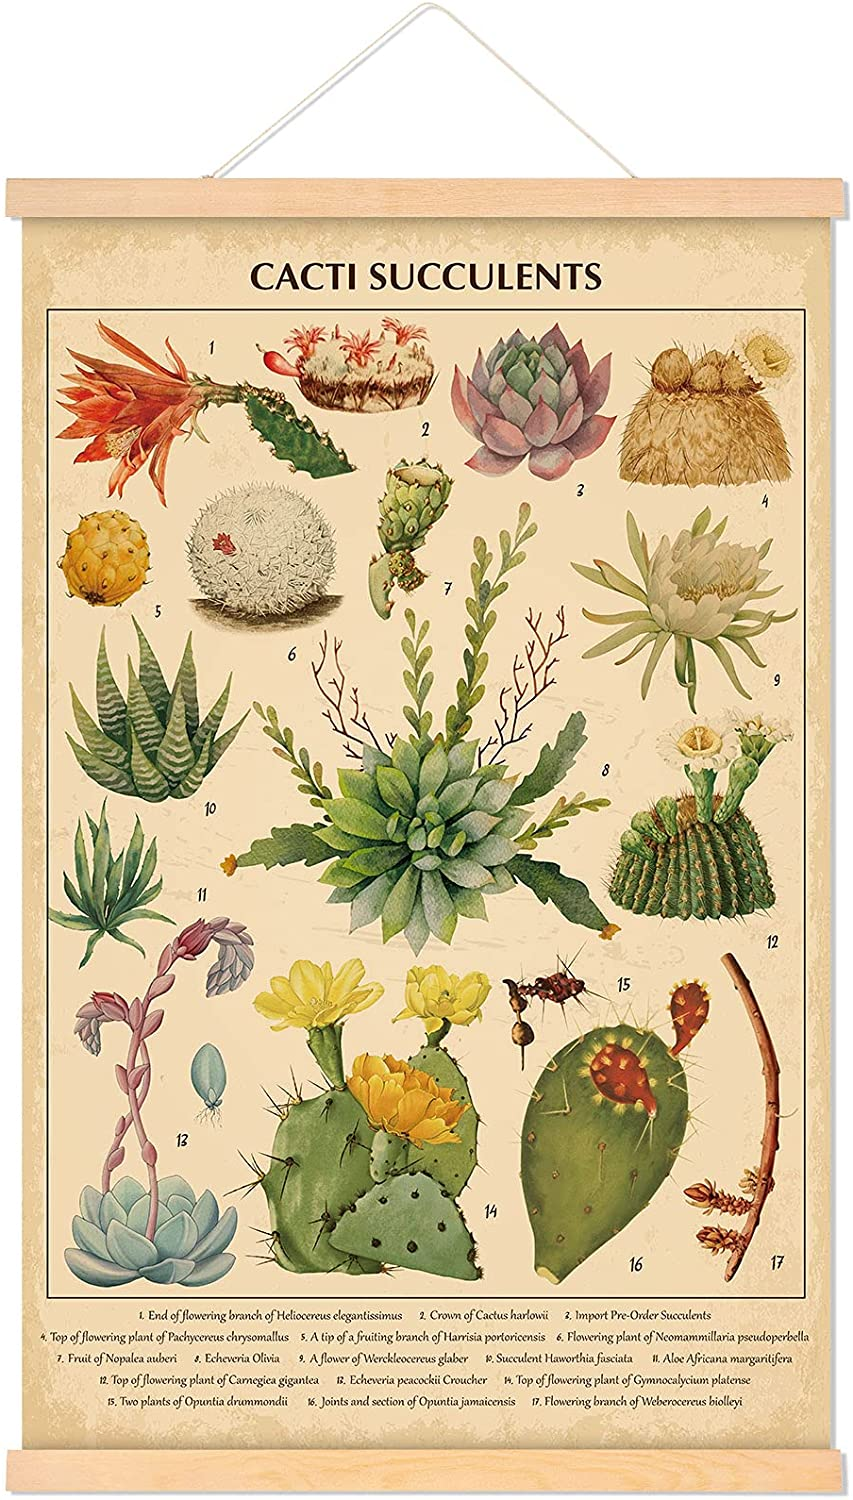 Vintage Cacti Succulents Poster Cactus Wall Art Prints Rustic Cactus Hanging Wall Decor Hanging Canvas Frame Wall Poster for Living Room Office Classroom Bedroom Dining Room Decor, 15.7 x 23.6 Inch